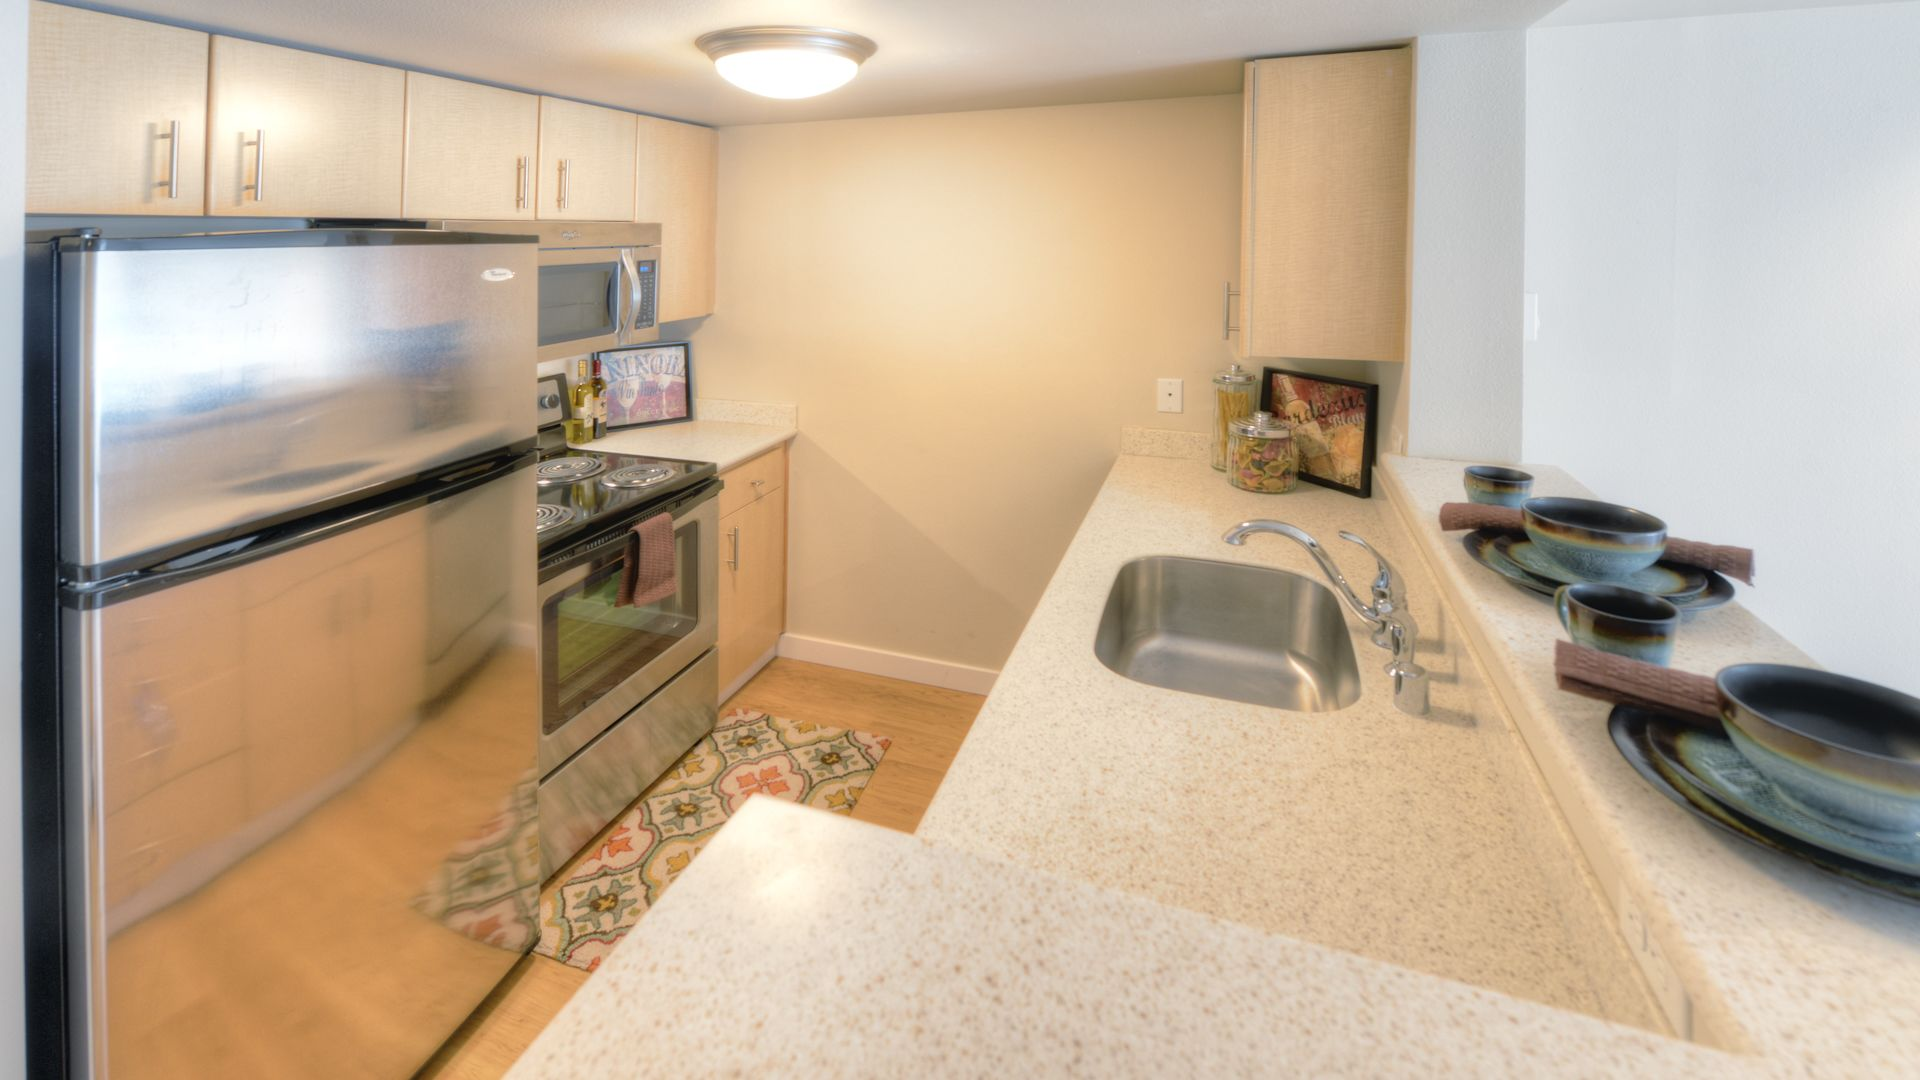 Centennial Tower and Court Apartments - Kitchen